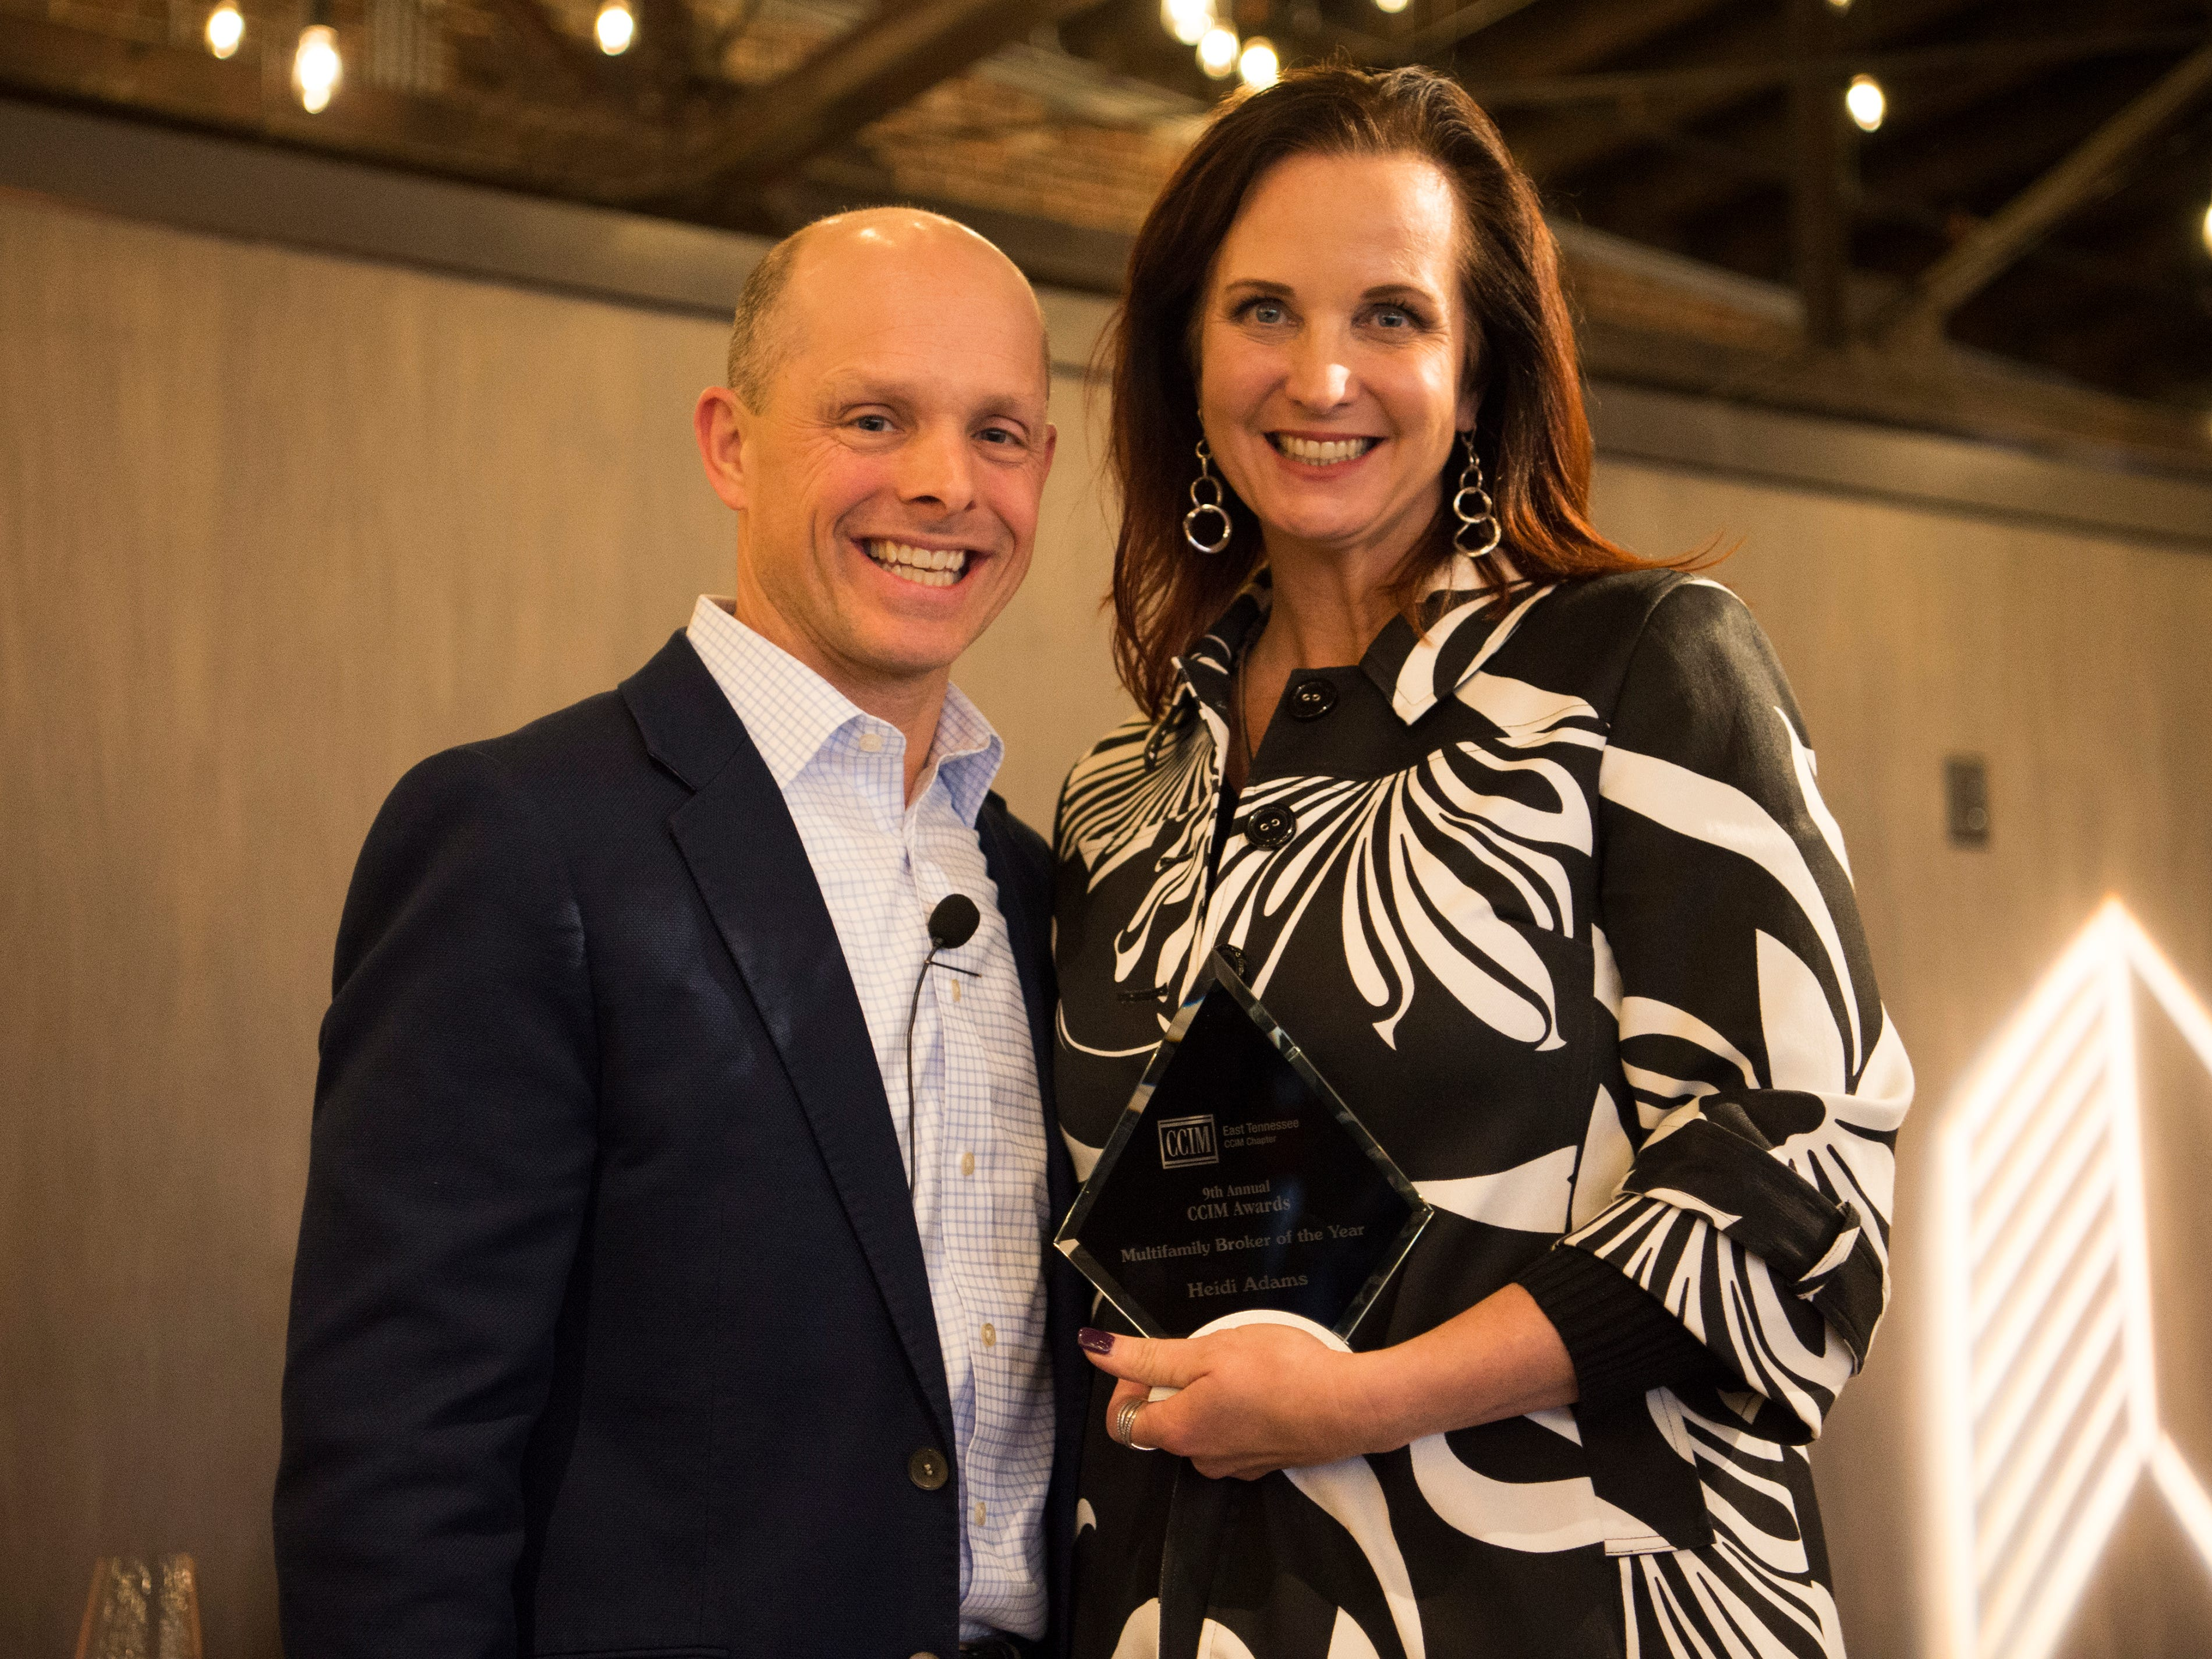 Heidi Adams, right, is awarded Multifamily Broker of the Year at the Commercial and Residential Real Estate Awards held at The Press Room in Knoxville on Tuesday, February 12, 2019.